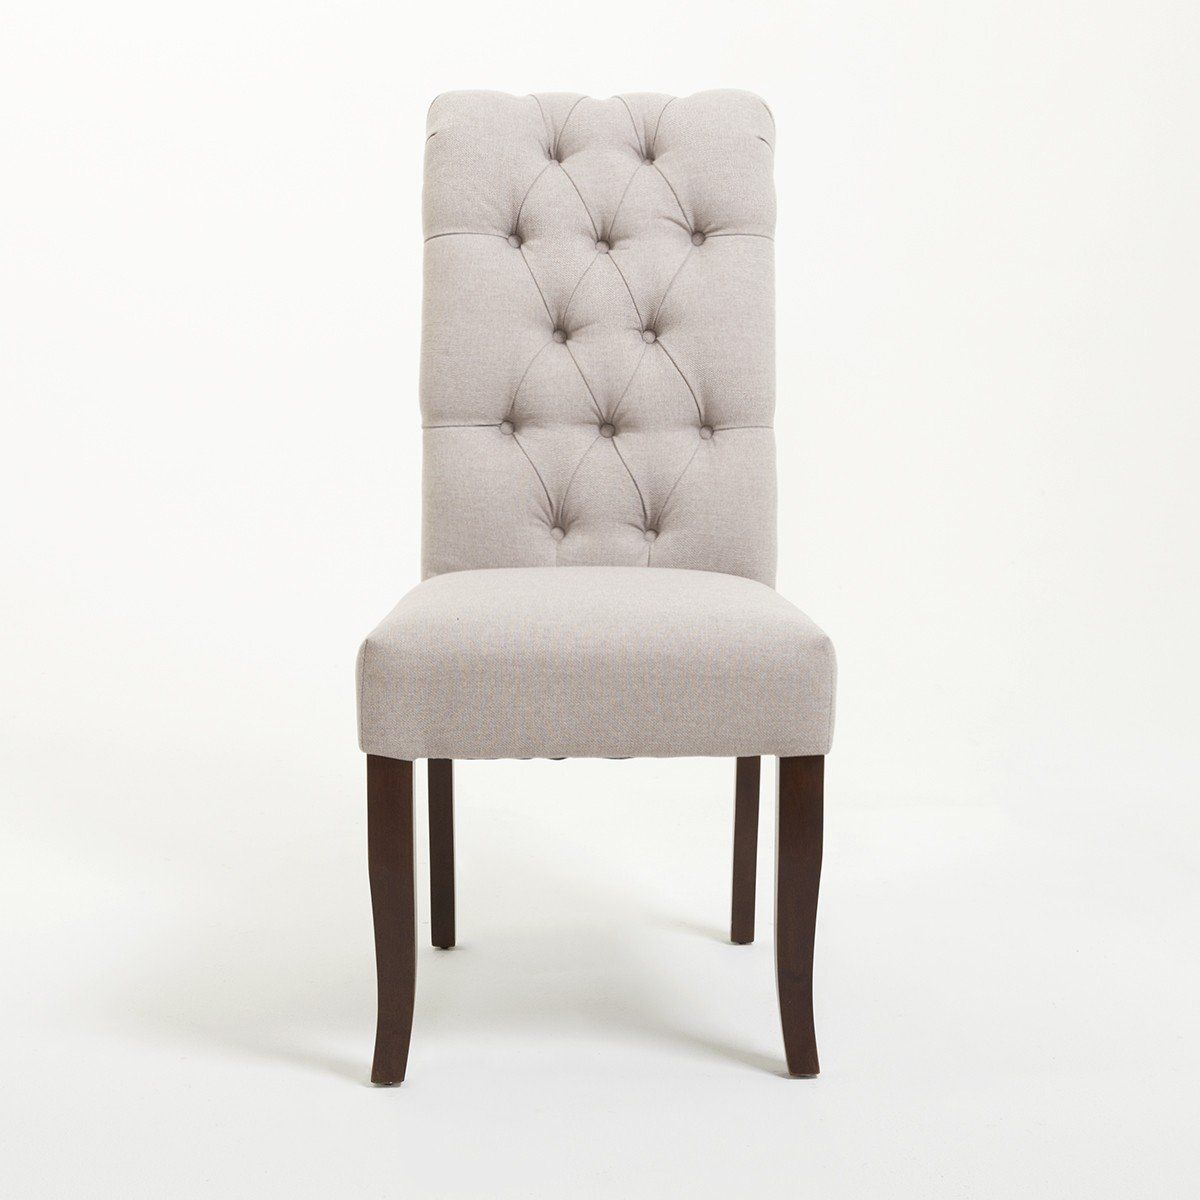 Sydney Dining Side Chair with Tufting - $269